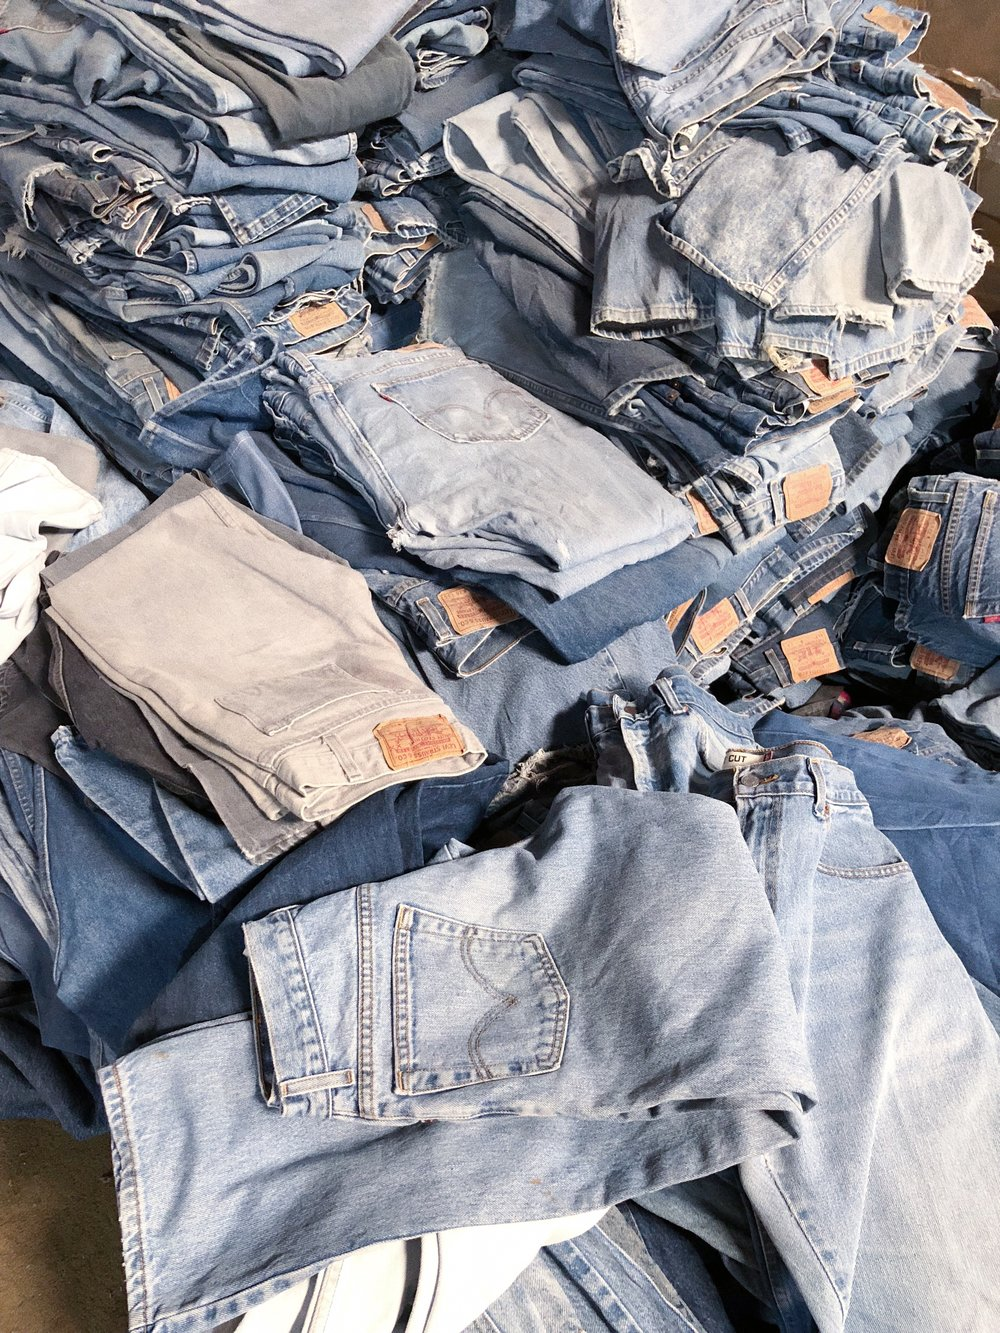 Piles of vintage denim….